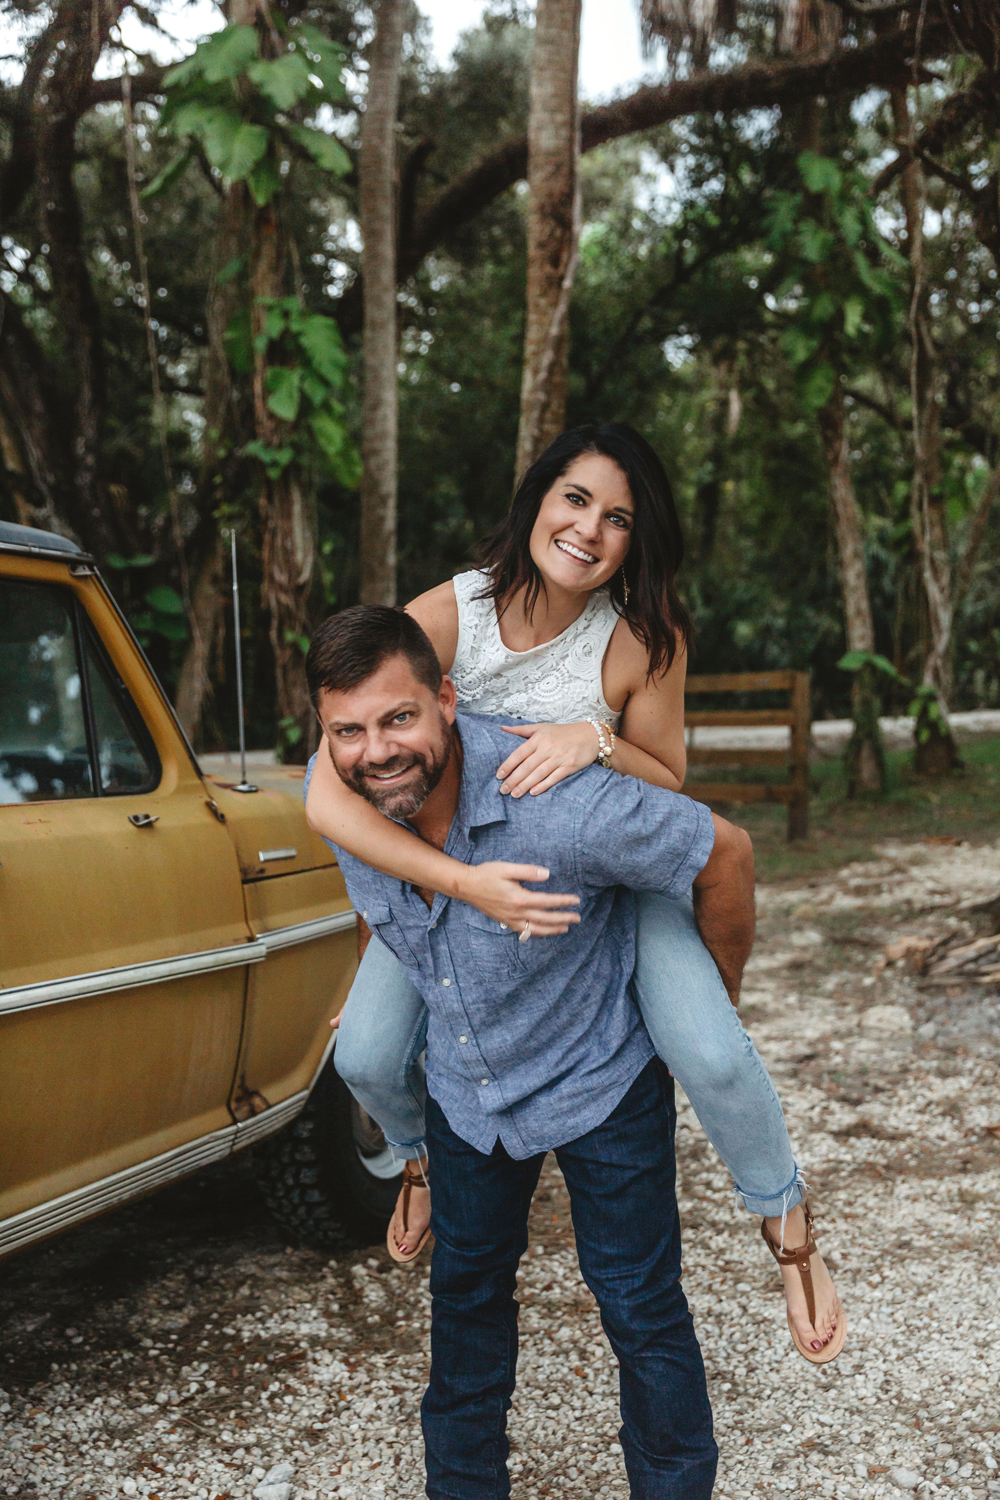 Naples Couples Photographer, couple smiling and laughing as they piggyback ride